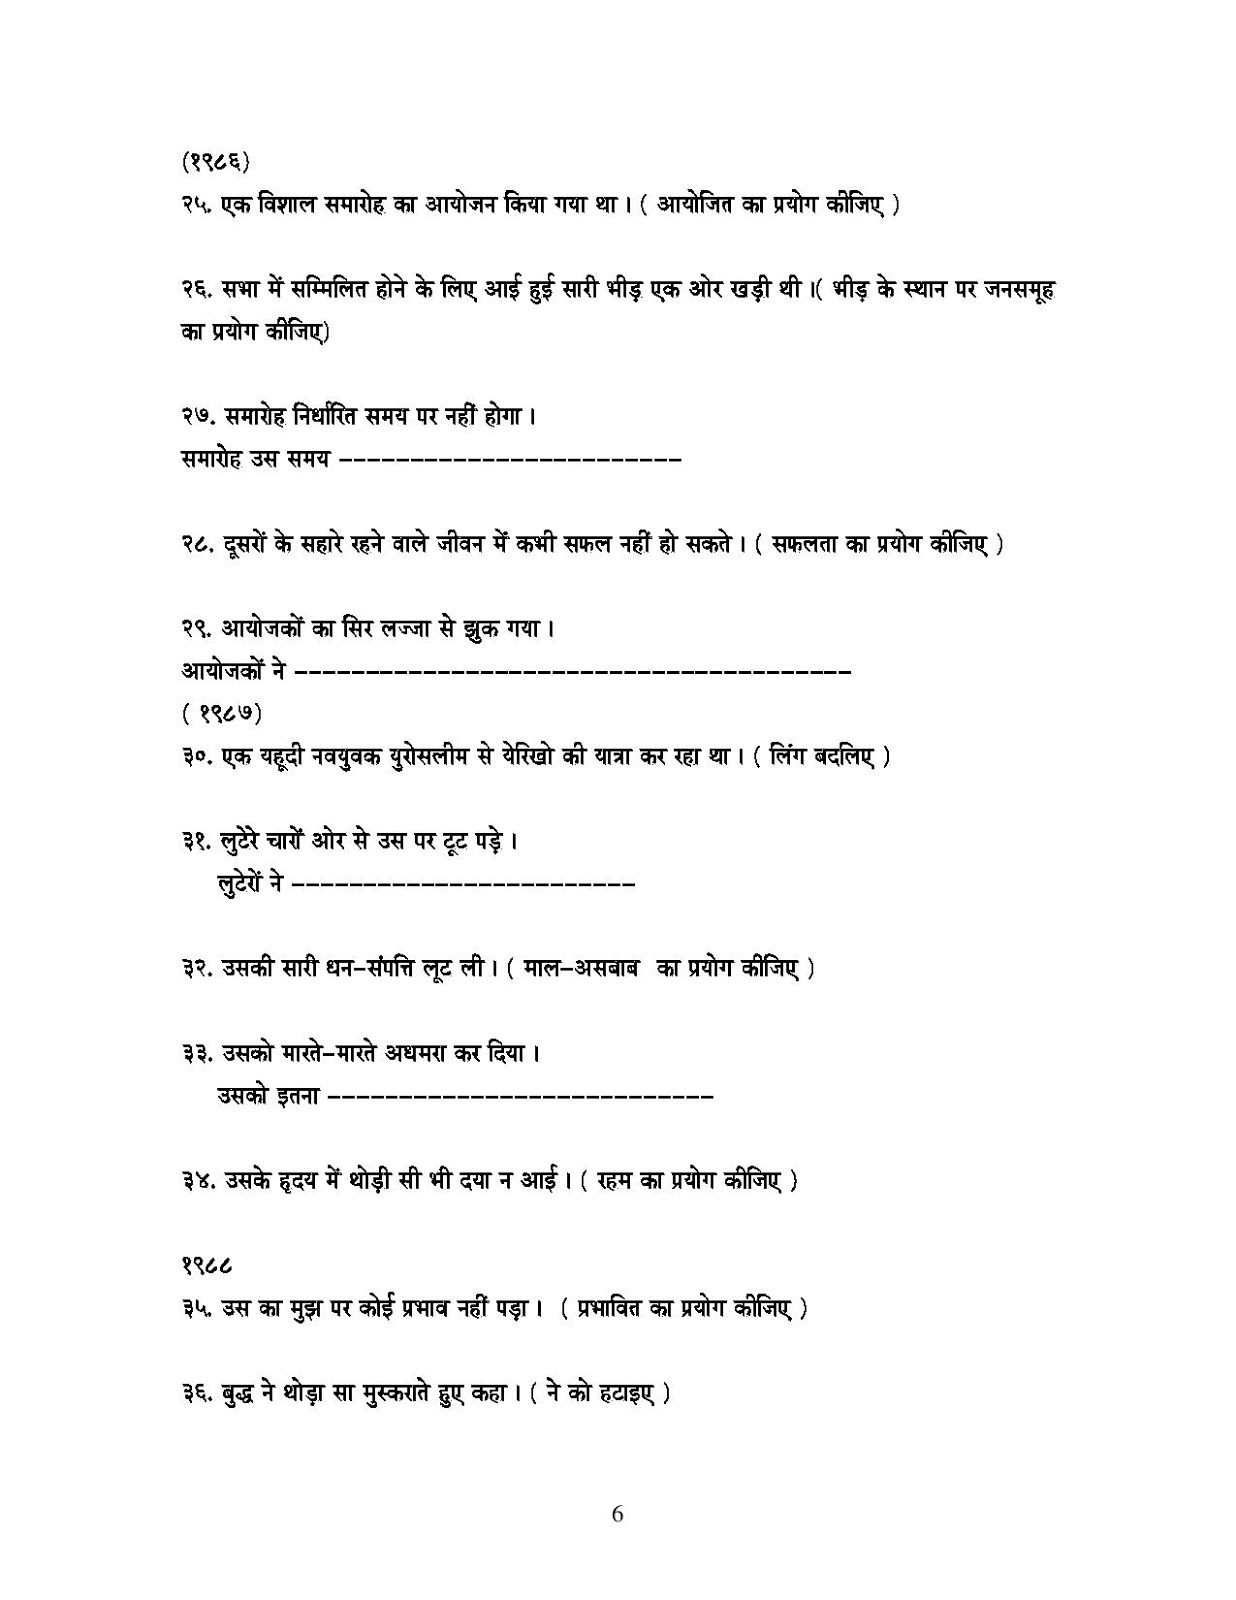 77 Free Download Hindi Worksheets For Class 5 Kv Class 5 Worksheets